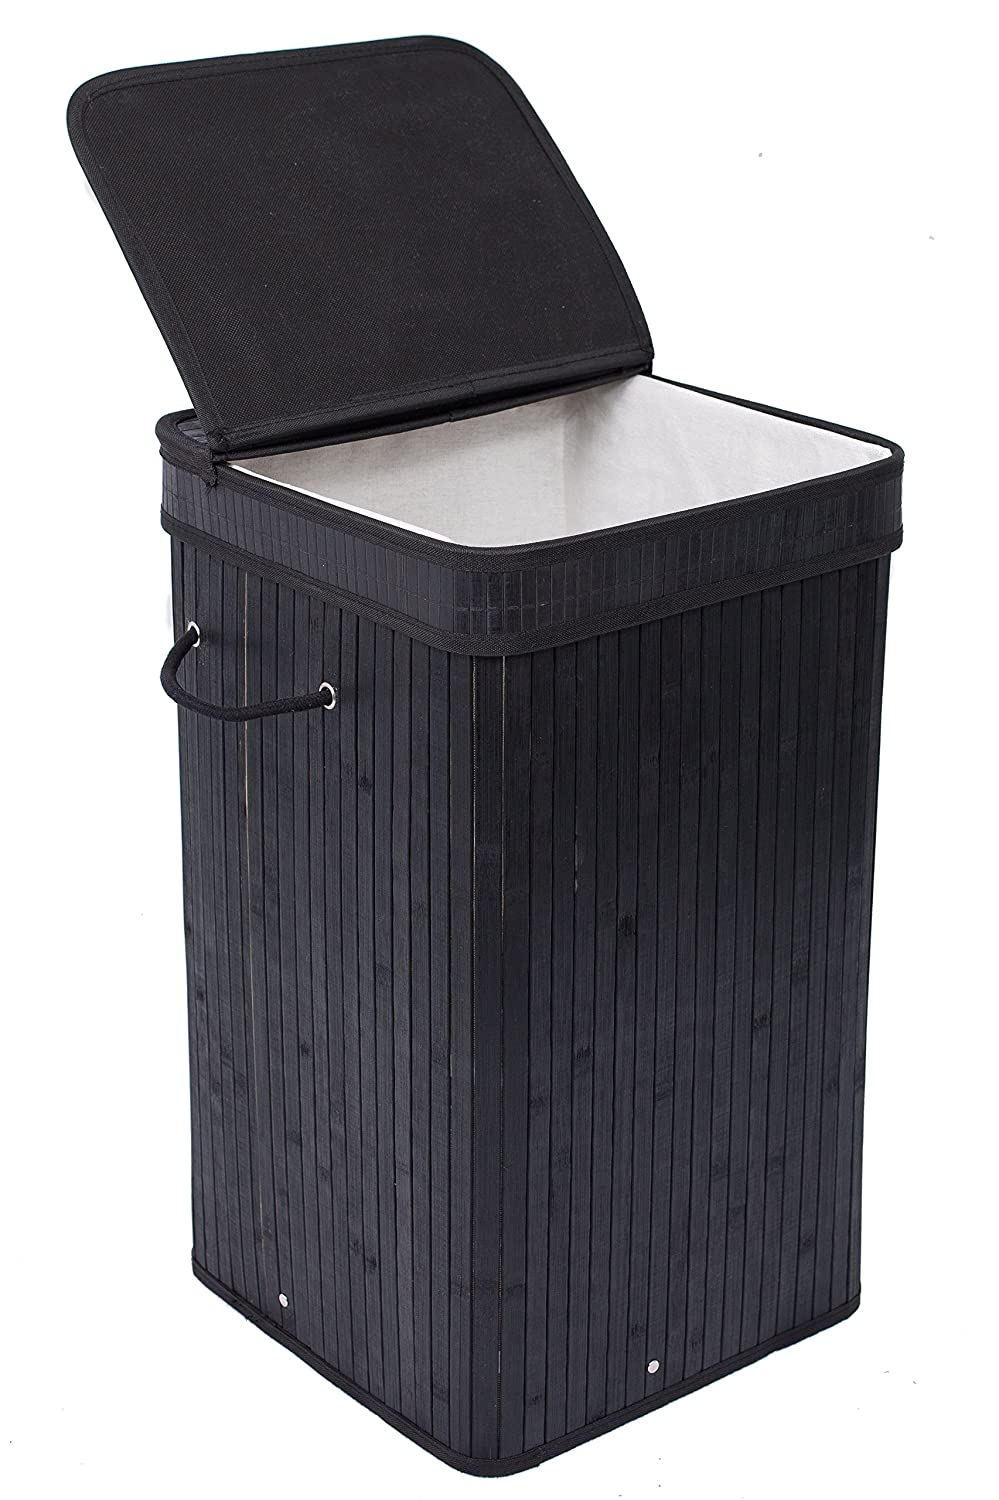 BIRDROCK HOME Square Laundry Hamper with Lid and Cloth Liner | Bamboo | Black | Easily Transport Laundry Basket | Collapsible Hamper | String Handles